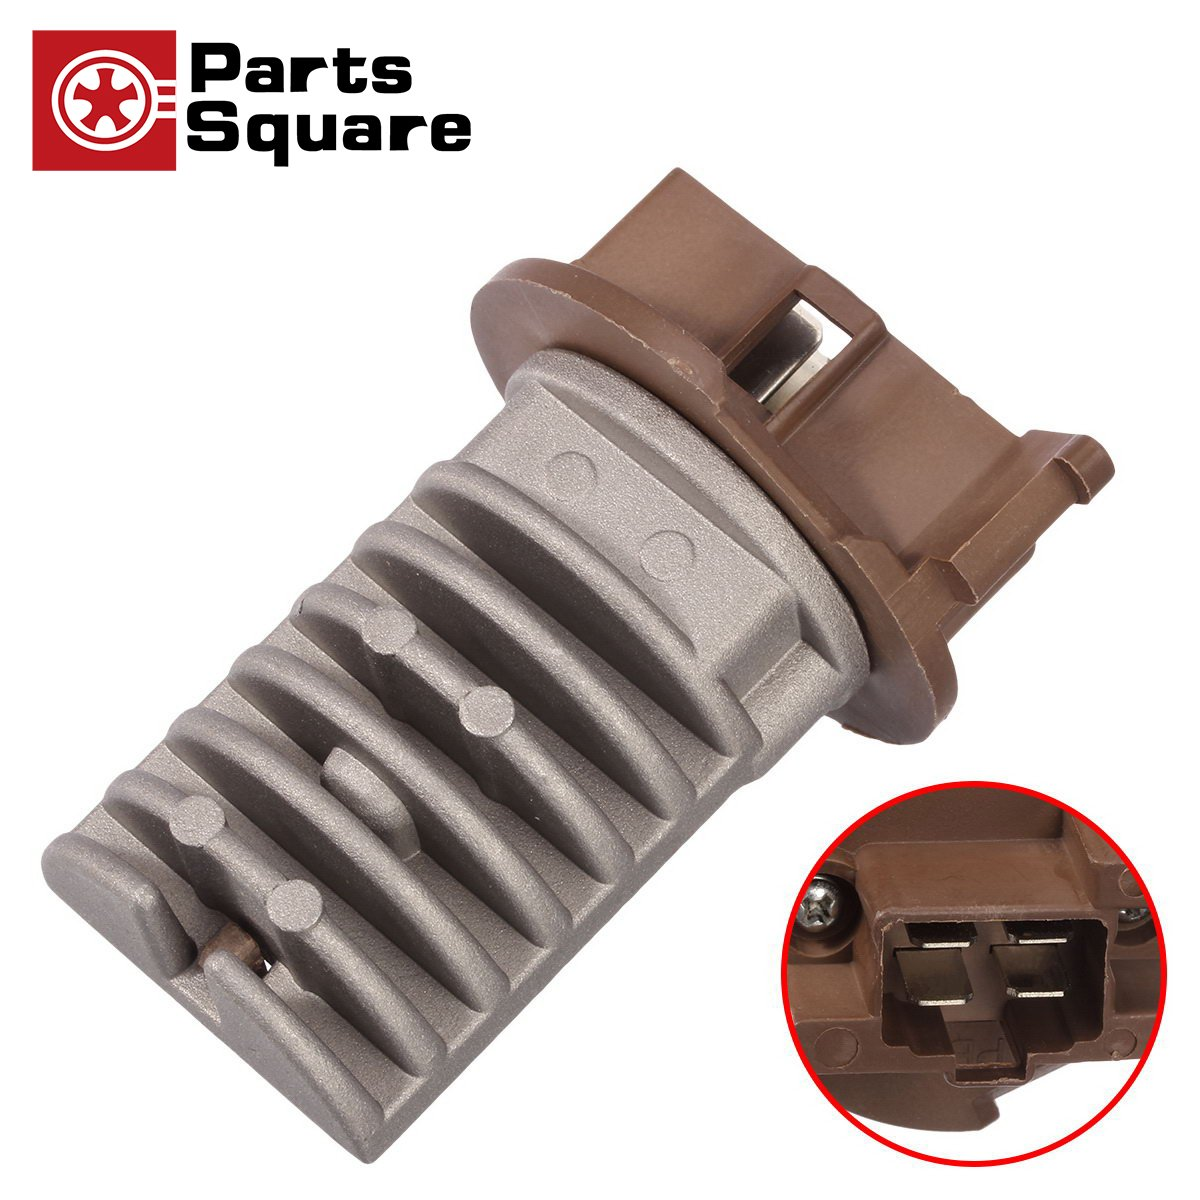 PartsSquare 4P1493 Rear A/C Heater Blower Motor Resistor RU364 Replacement for 2001 2002 2003 2004 2005 2006 ACURA MDX, 2003 2004 2005 2006 2007 2008 HONDA PILOT